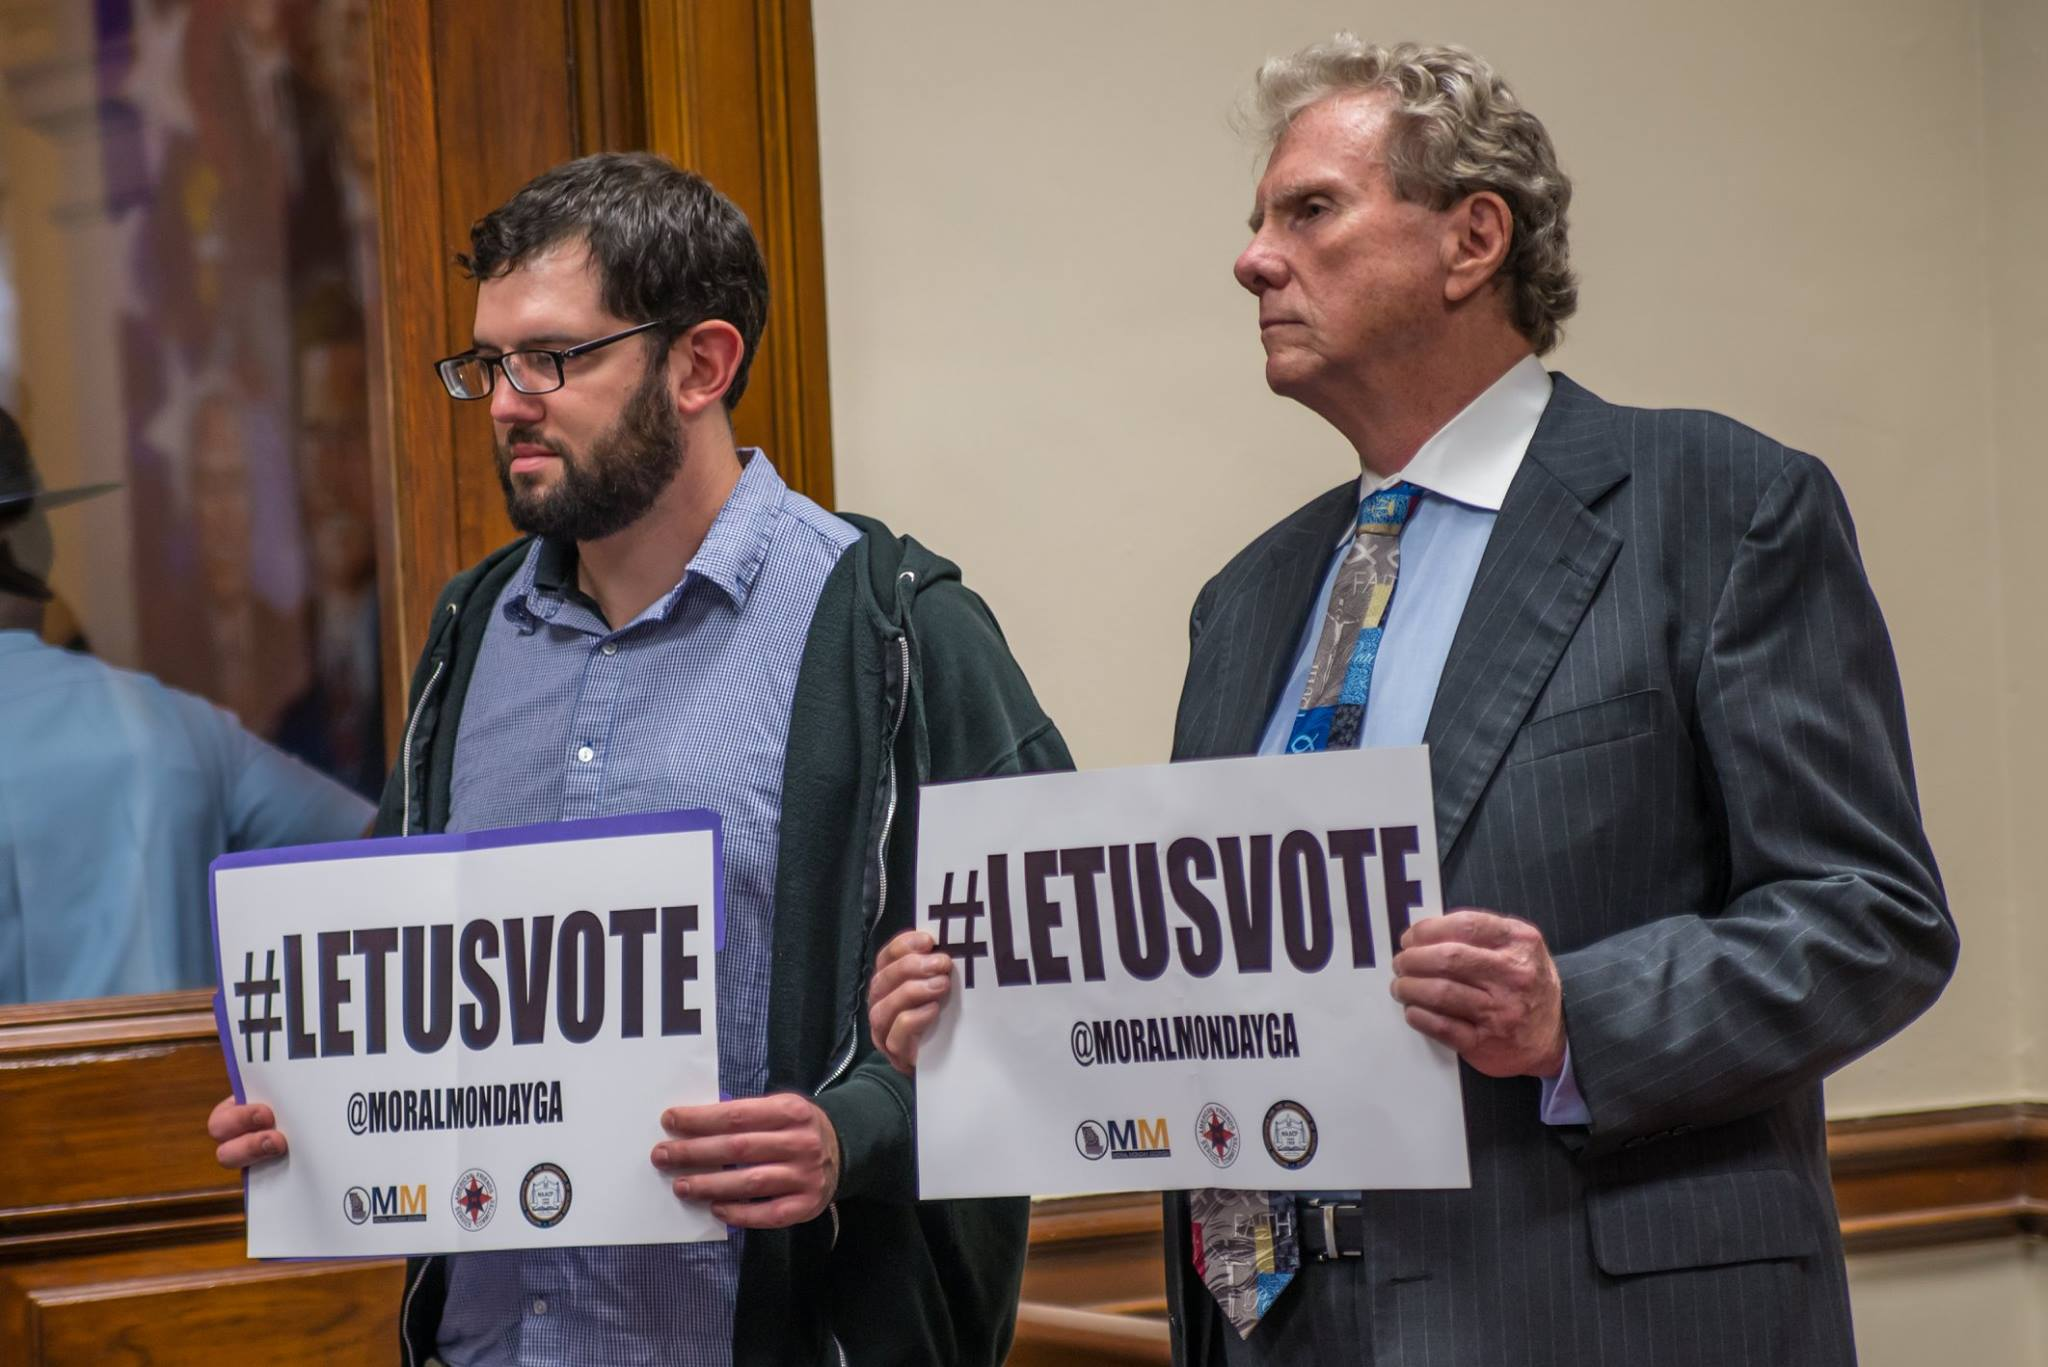 Protesters-against-voter-suppression